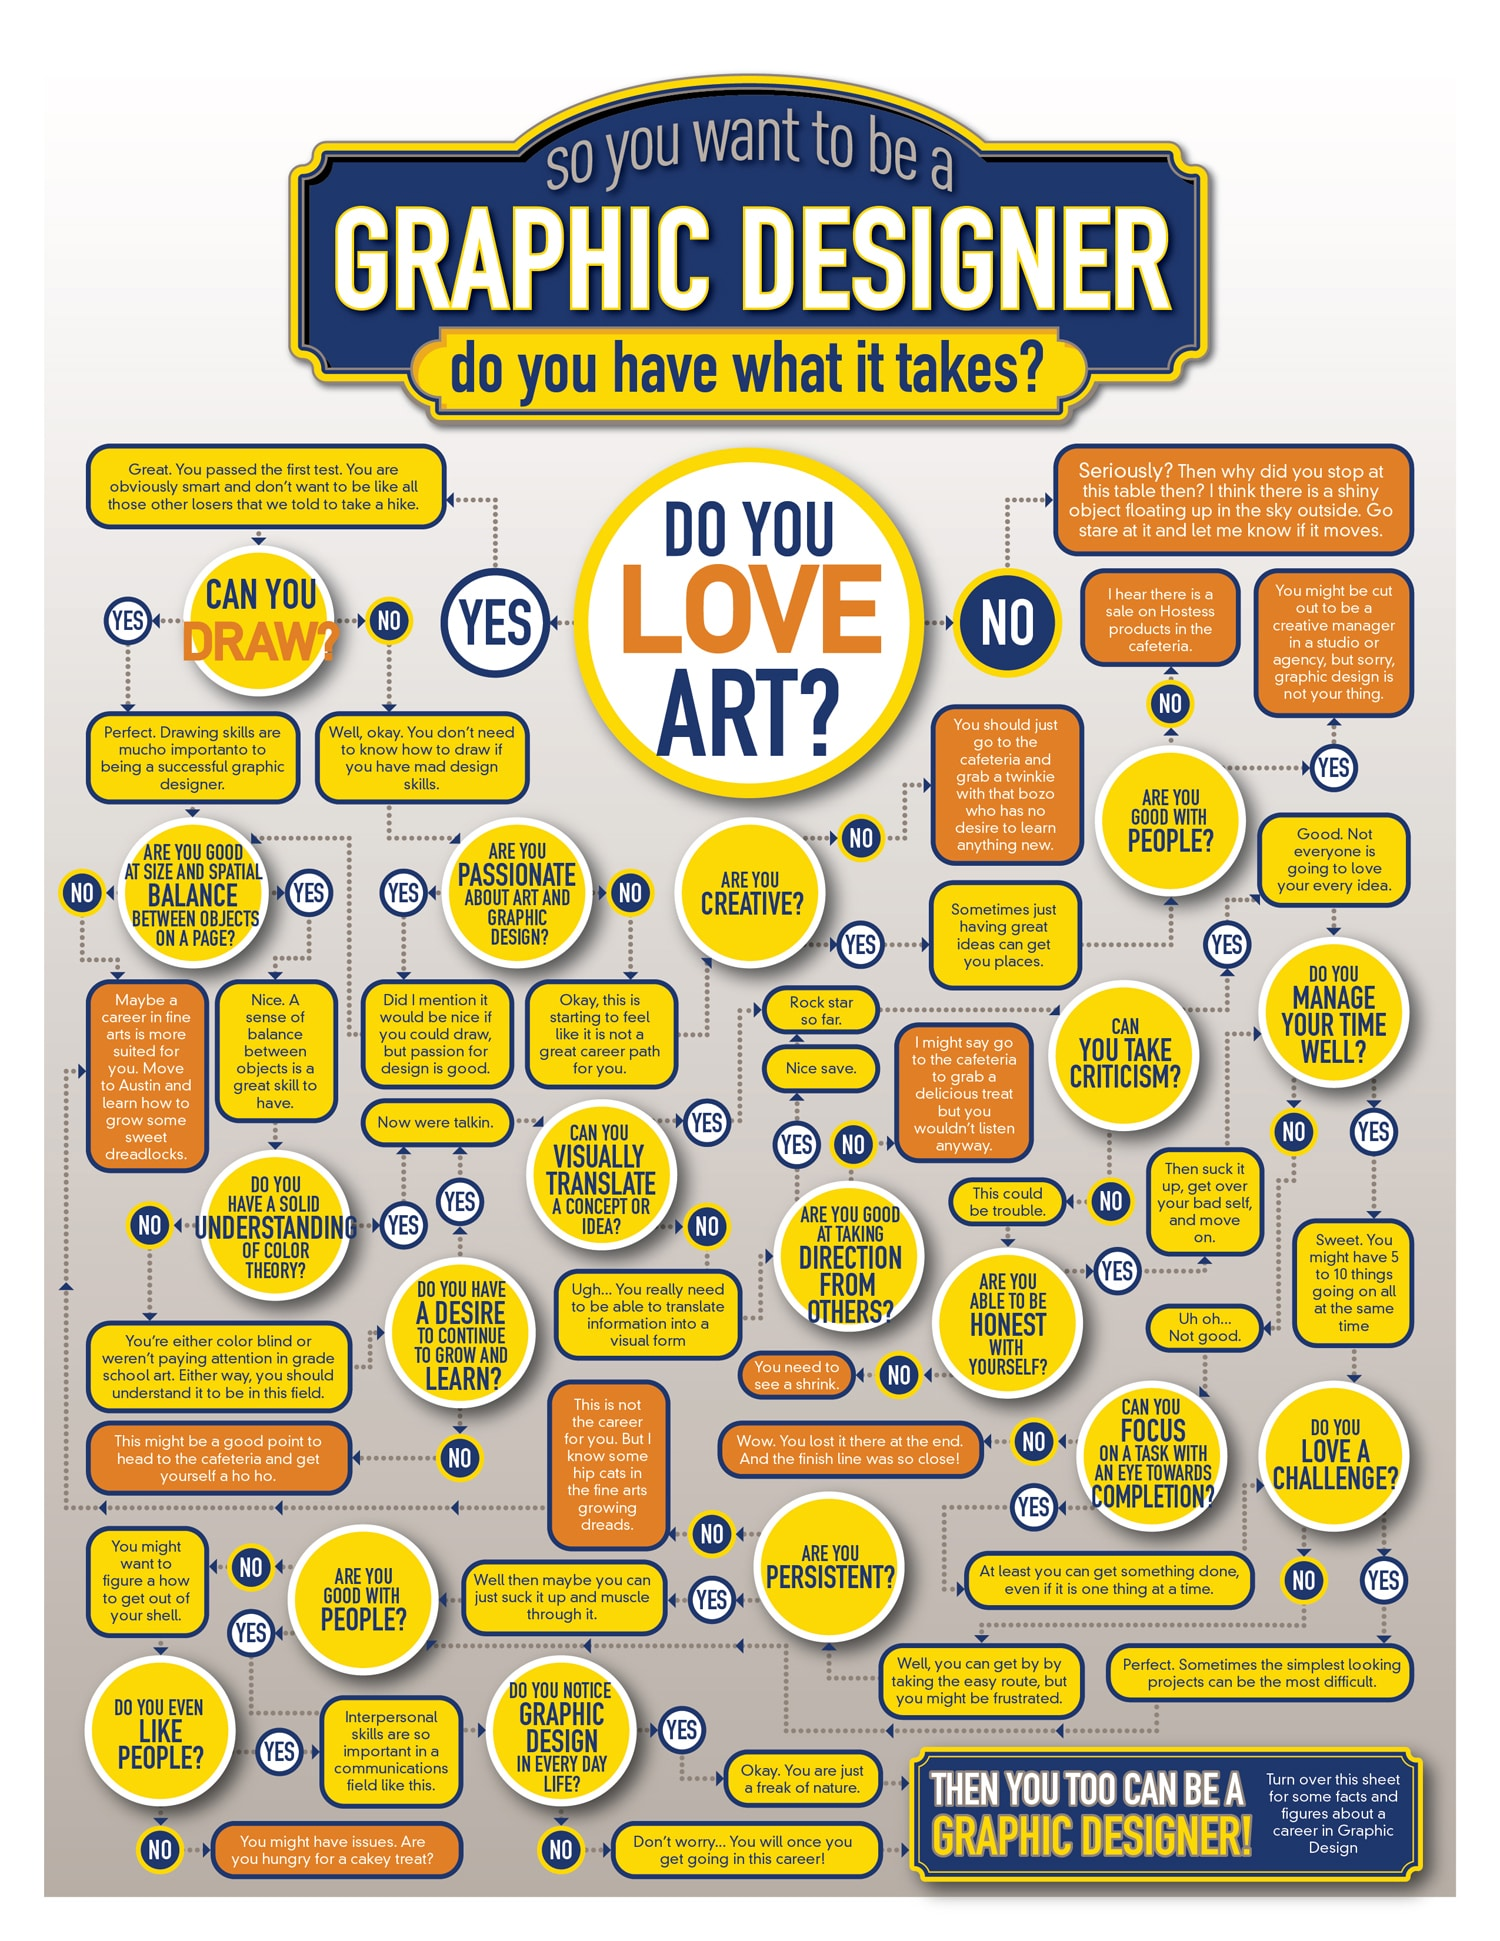 Do You Have What It Takes To Be A Graphic Designer? [Flowchart]